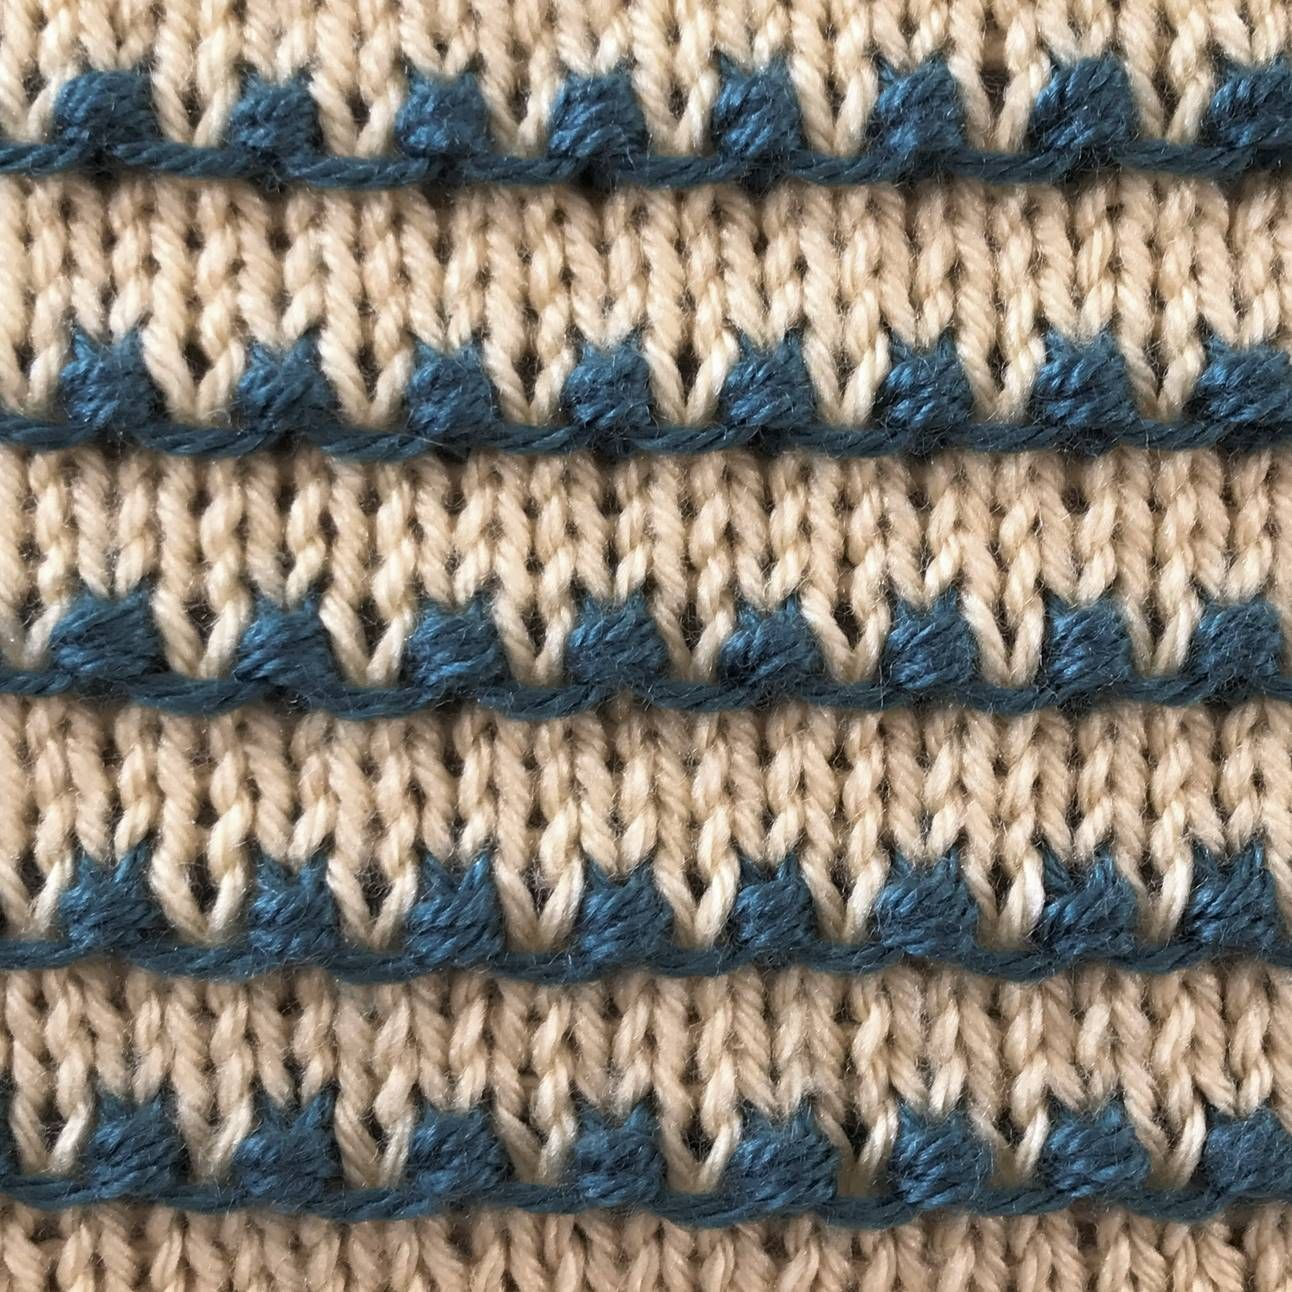 The Tiny Bobbles Stitch II is a multi-color version of the ...